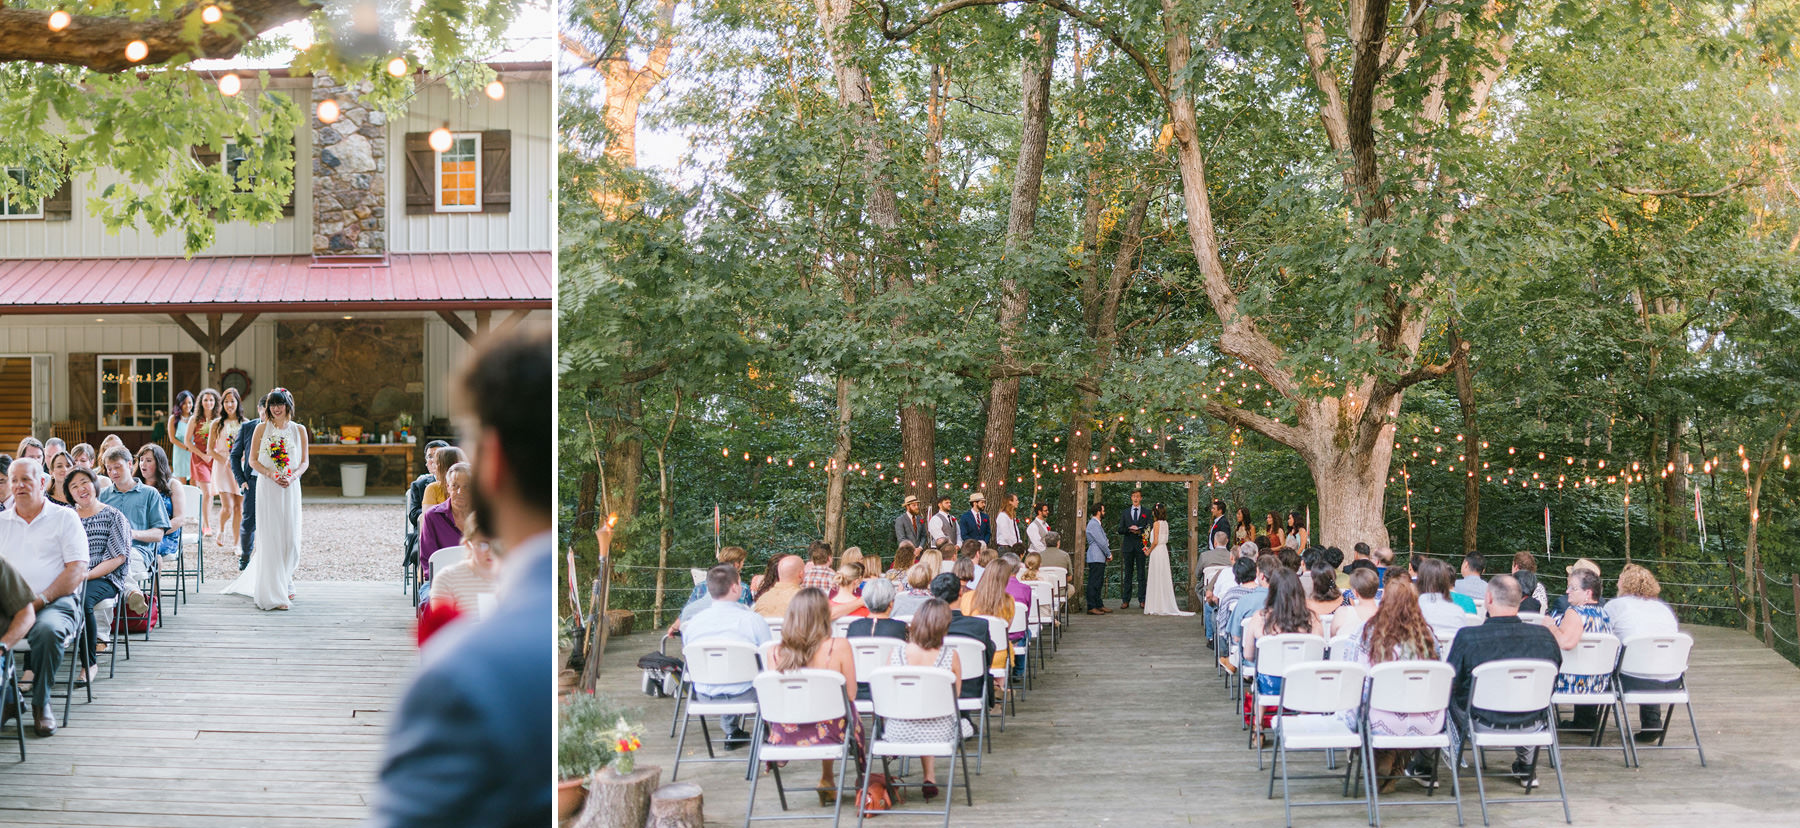 279_Blackberry Creek Outdoor Ozarks Wedding Springfield, Missouri_Kindling Wedding Photography.JPG